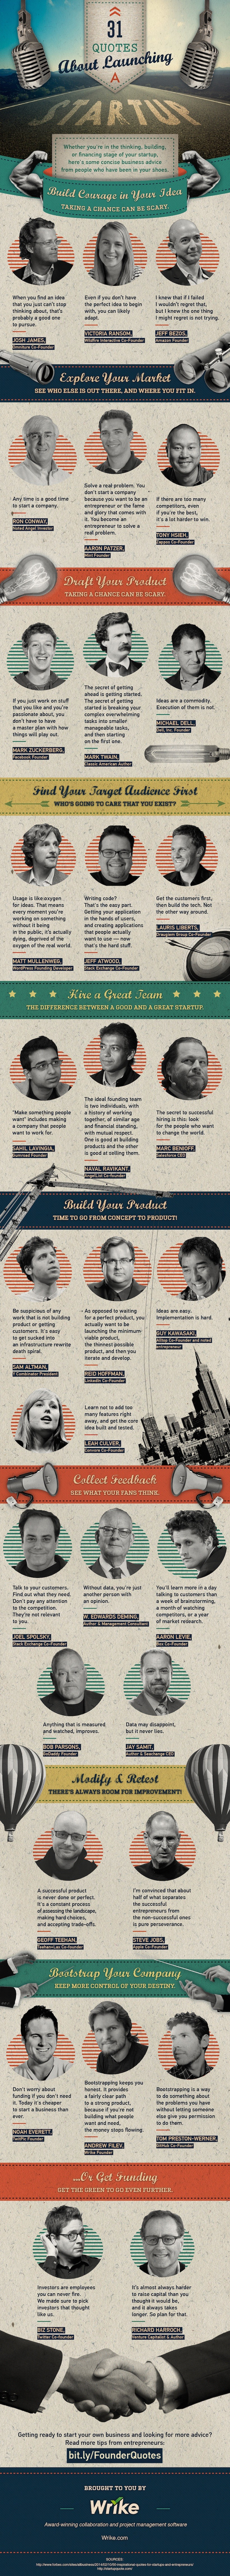 31 Quotes About Launching a Startup (Infographic)